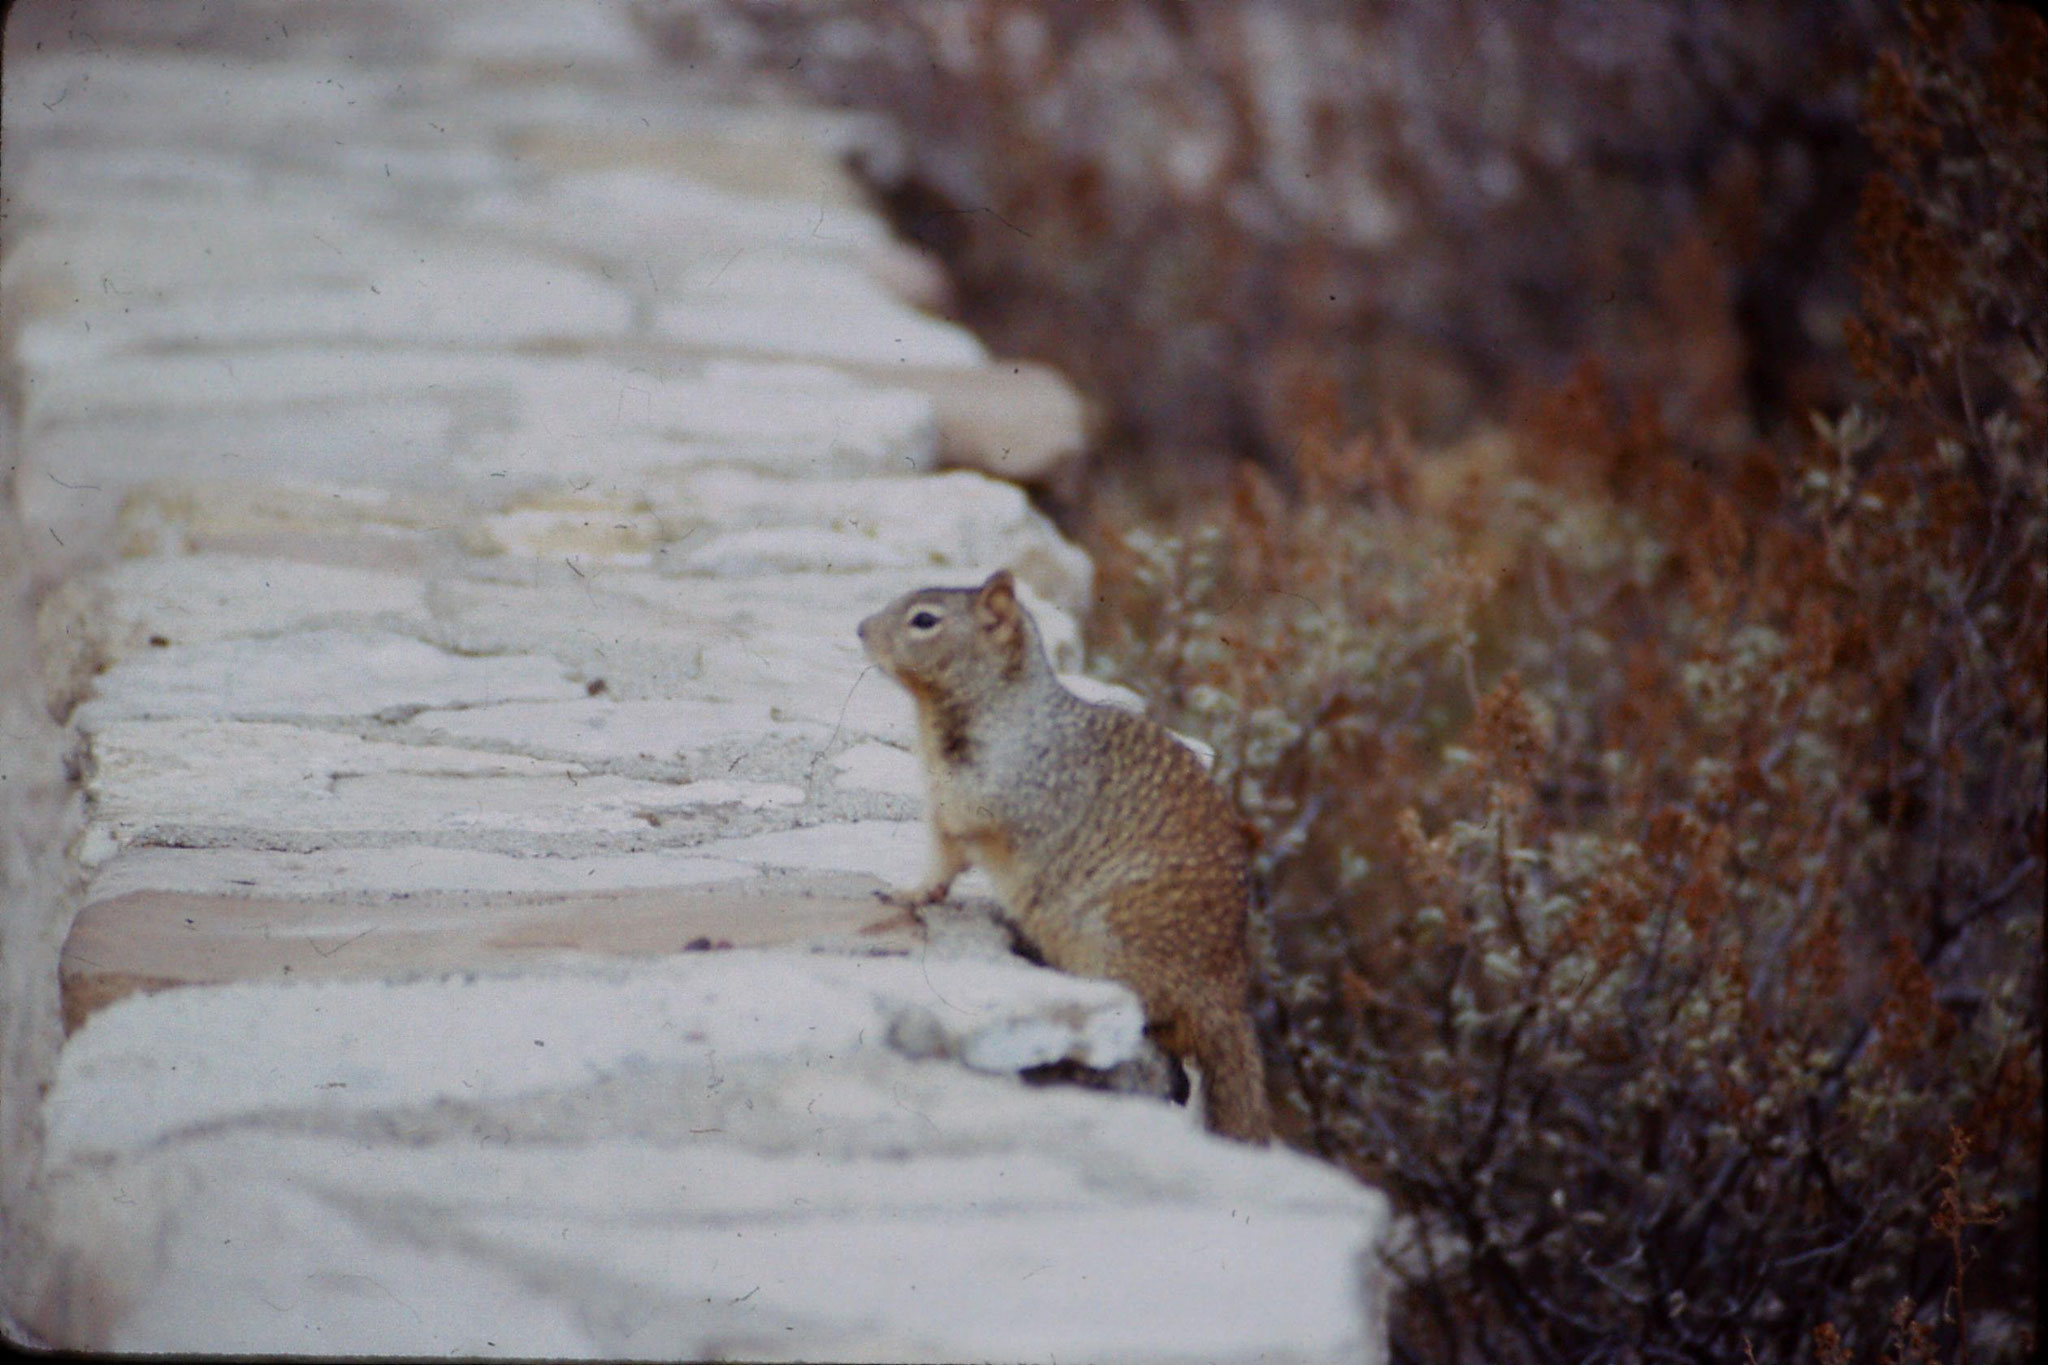 17/12/1990: 2: Abert Squirrels